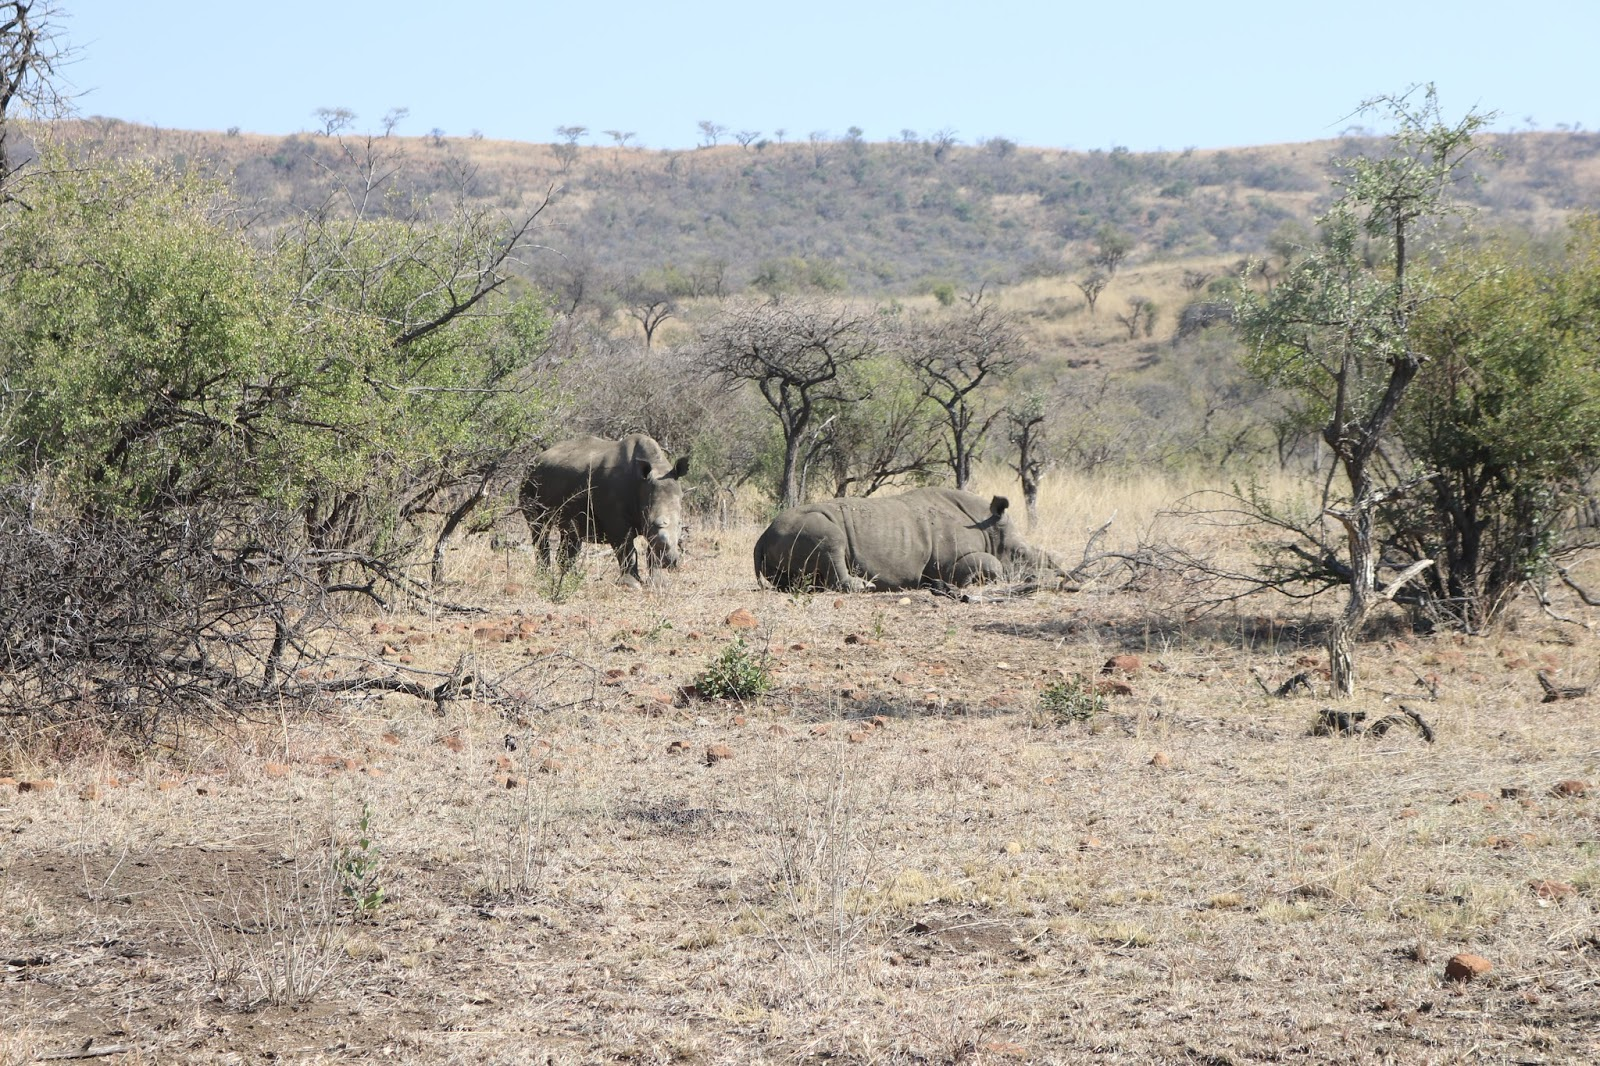 Rhino in the Nambiti Game Reserve, South Africa